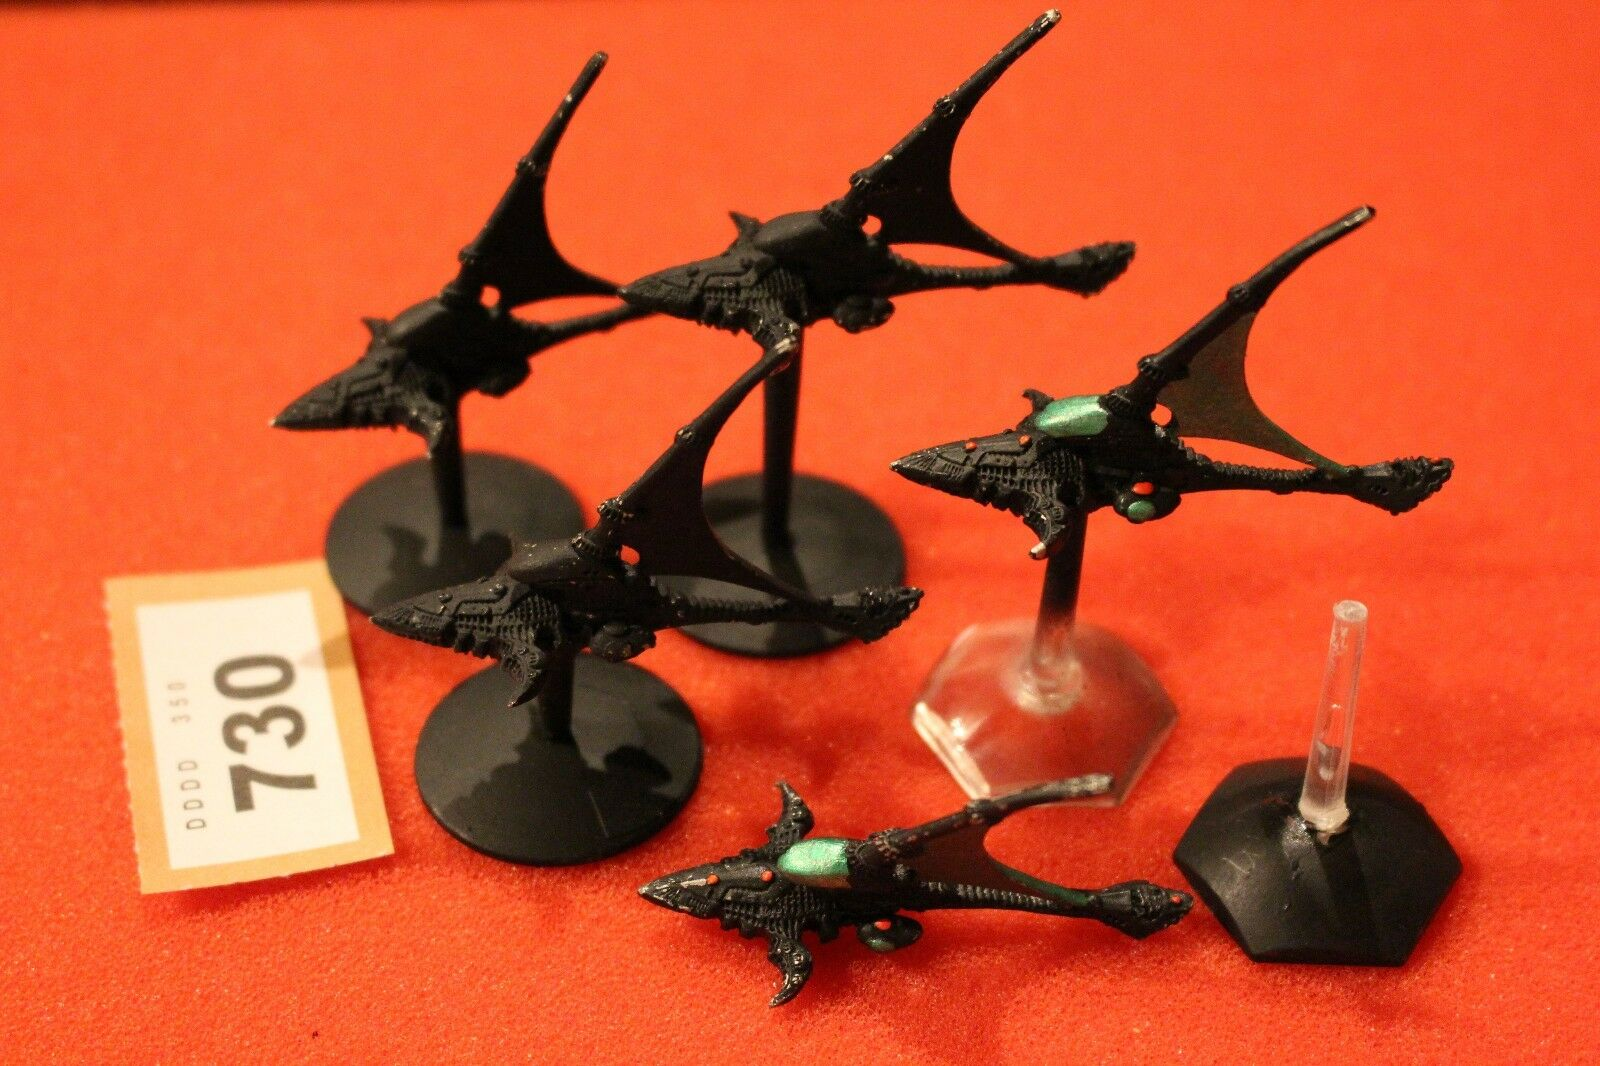 Games Workshop Citadel espacio flota Eldar Shadowhunter superestructura Metal x5